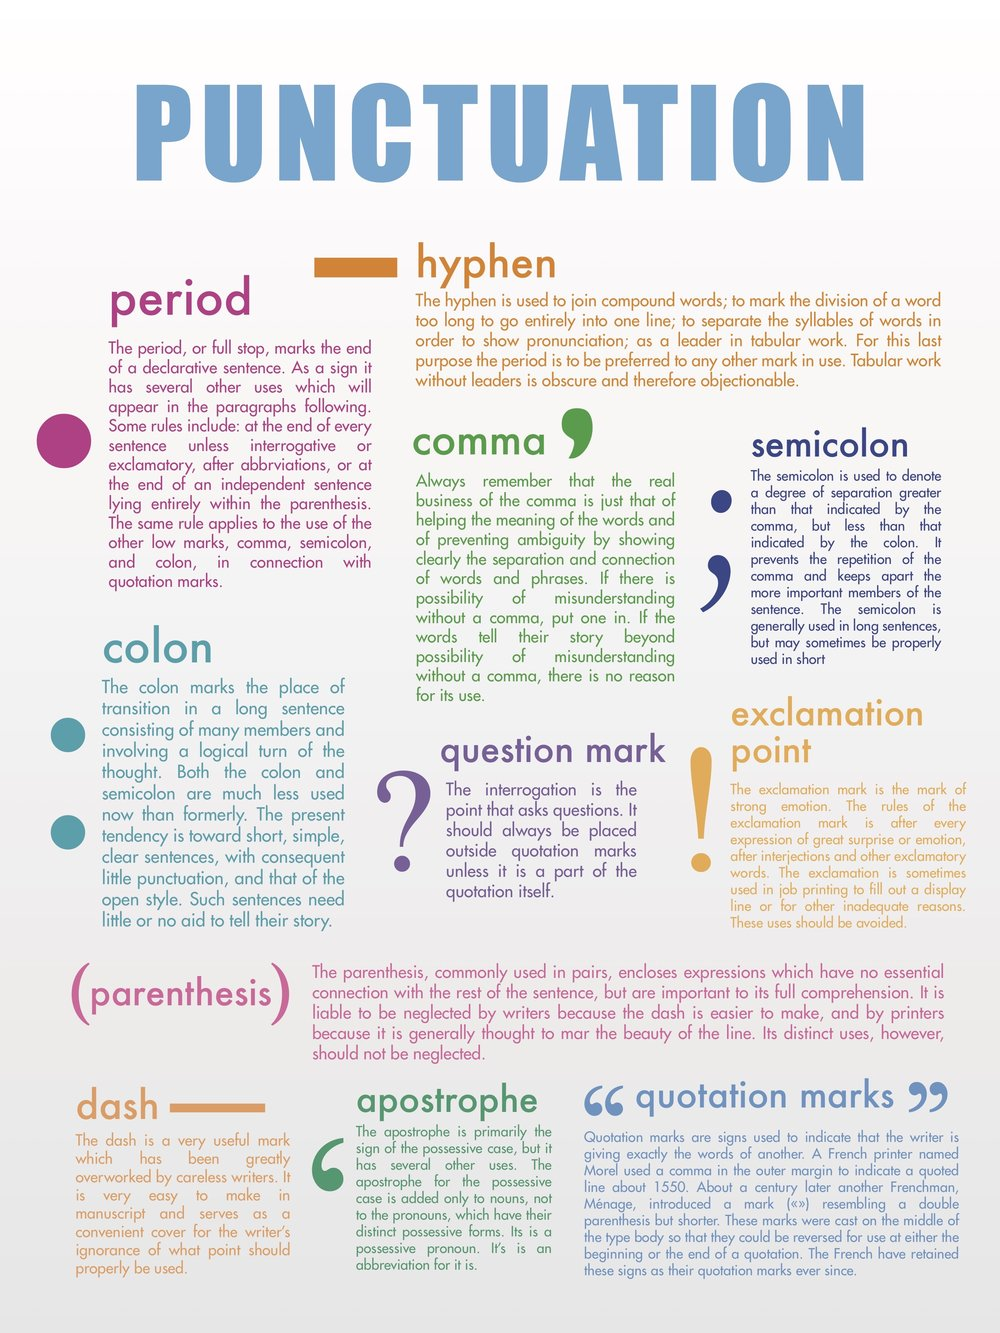 FL1_1505_ENGLISH CLASSROOM POSTERS_24x18.jpg